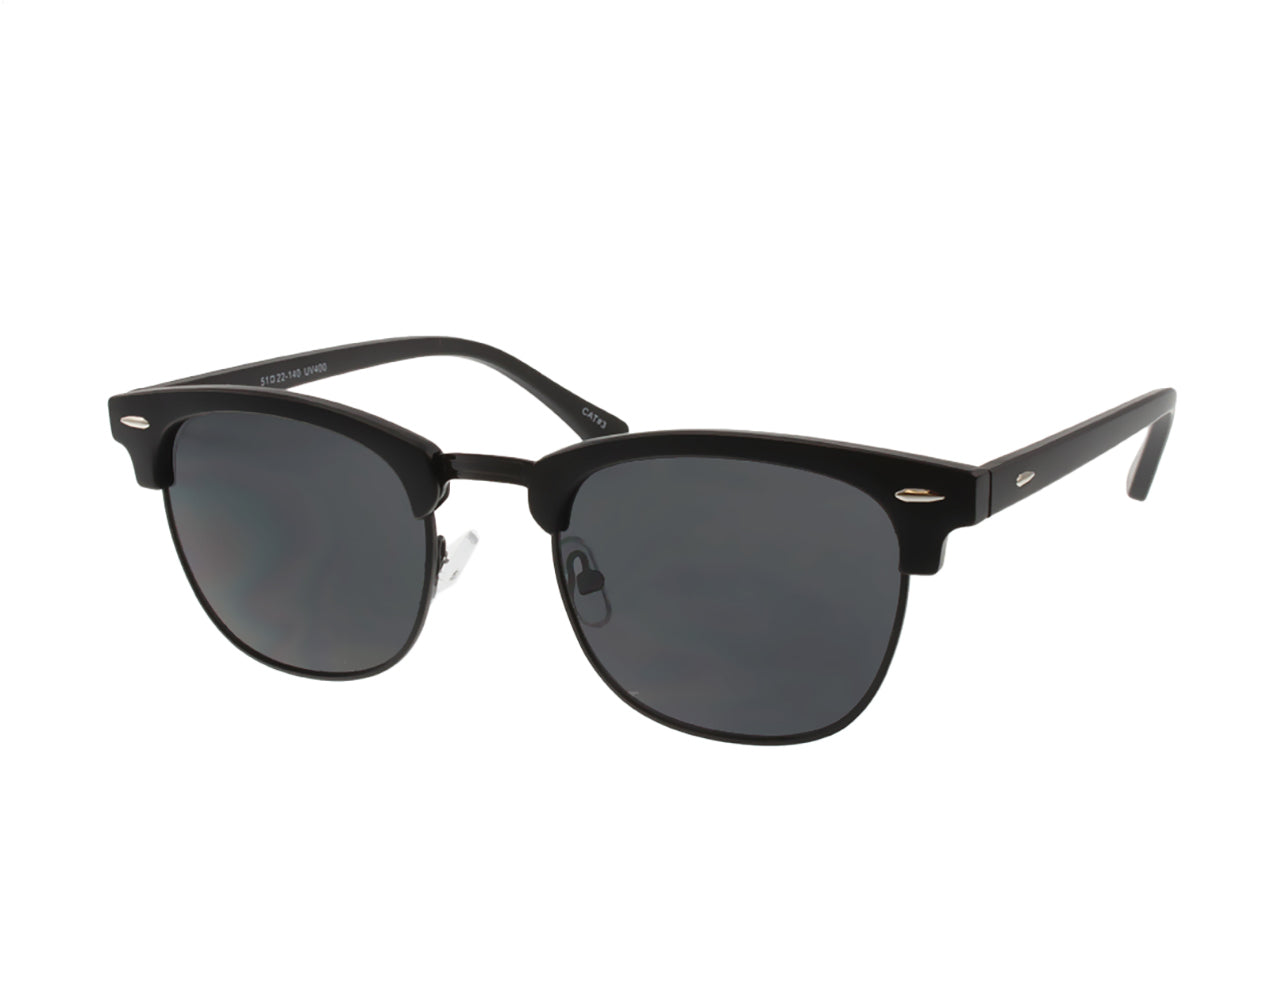 Dean - MeSunnies Collection - IvoryMasonSunnies